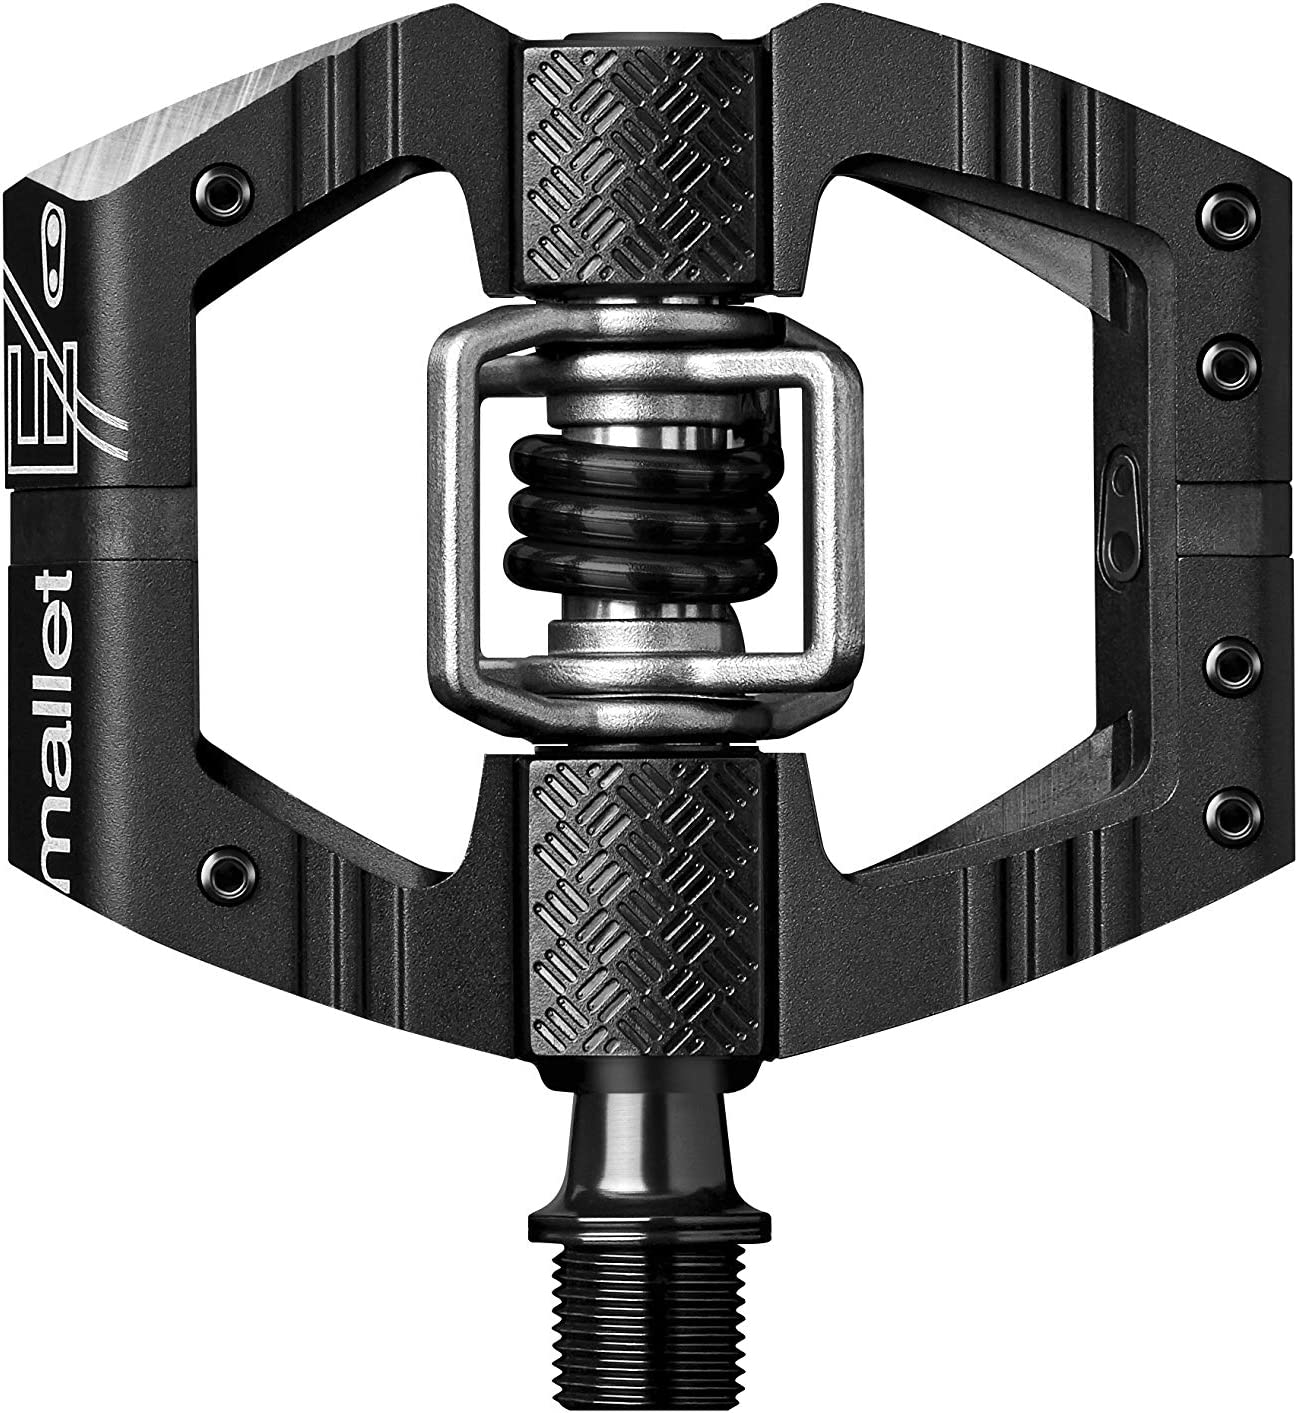 Crankbrothers Mallet Enduro Pedals